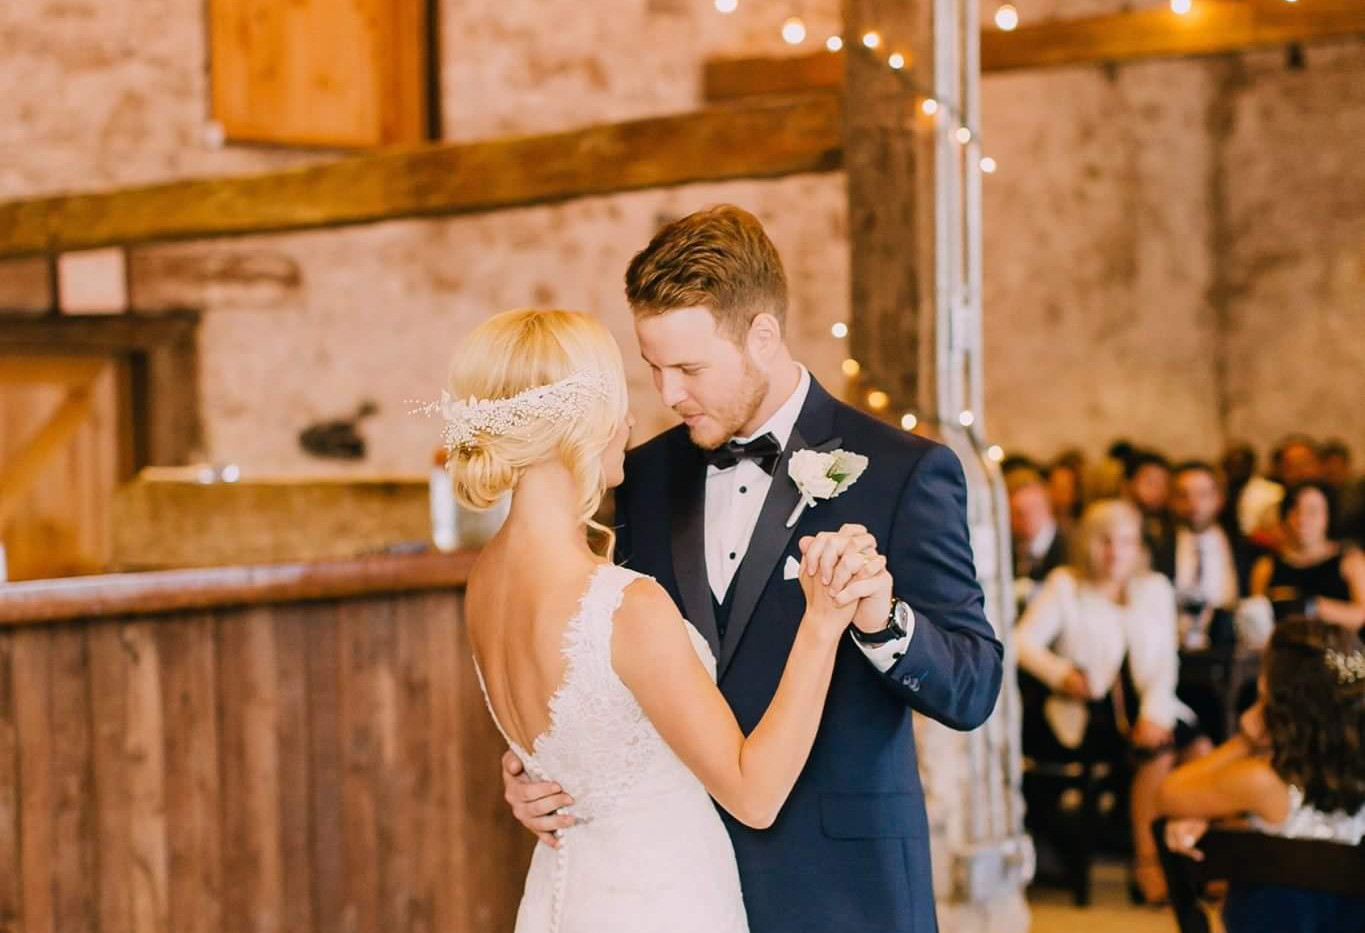 Bride and Groom sharing their first dance in white stone barn under espresso cafe lighting